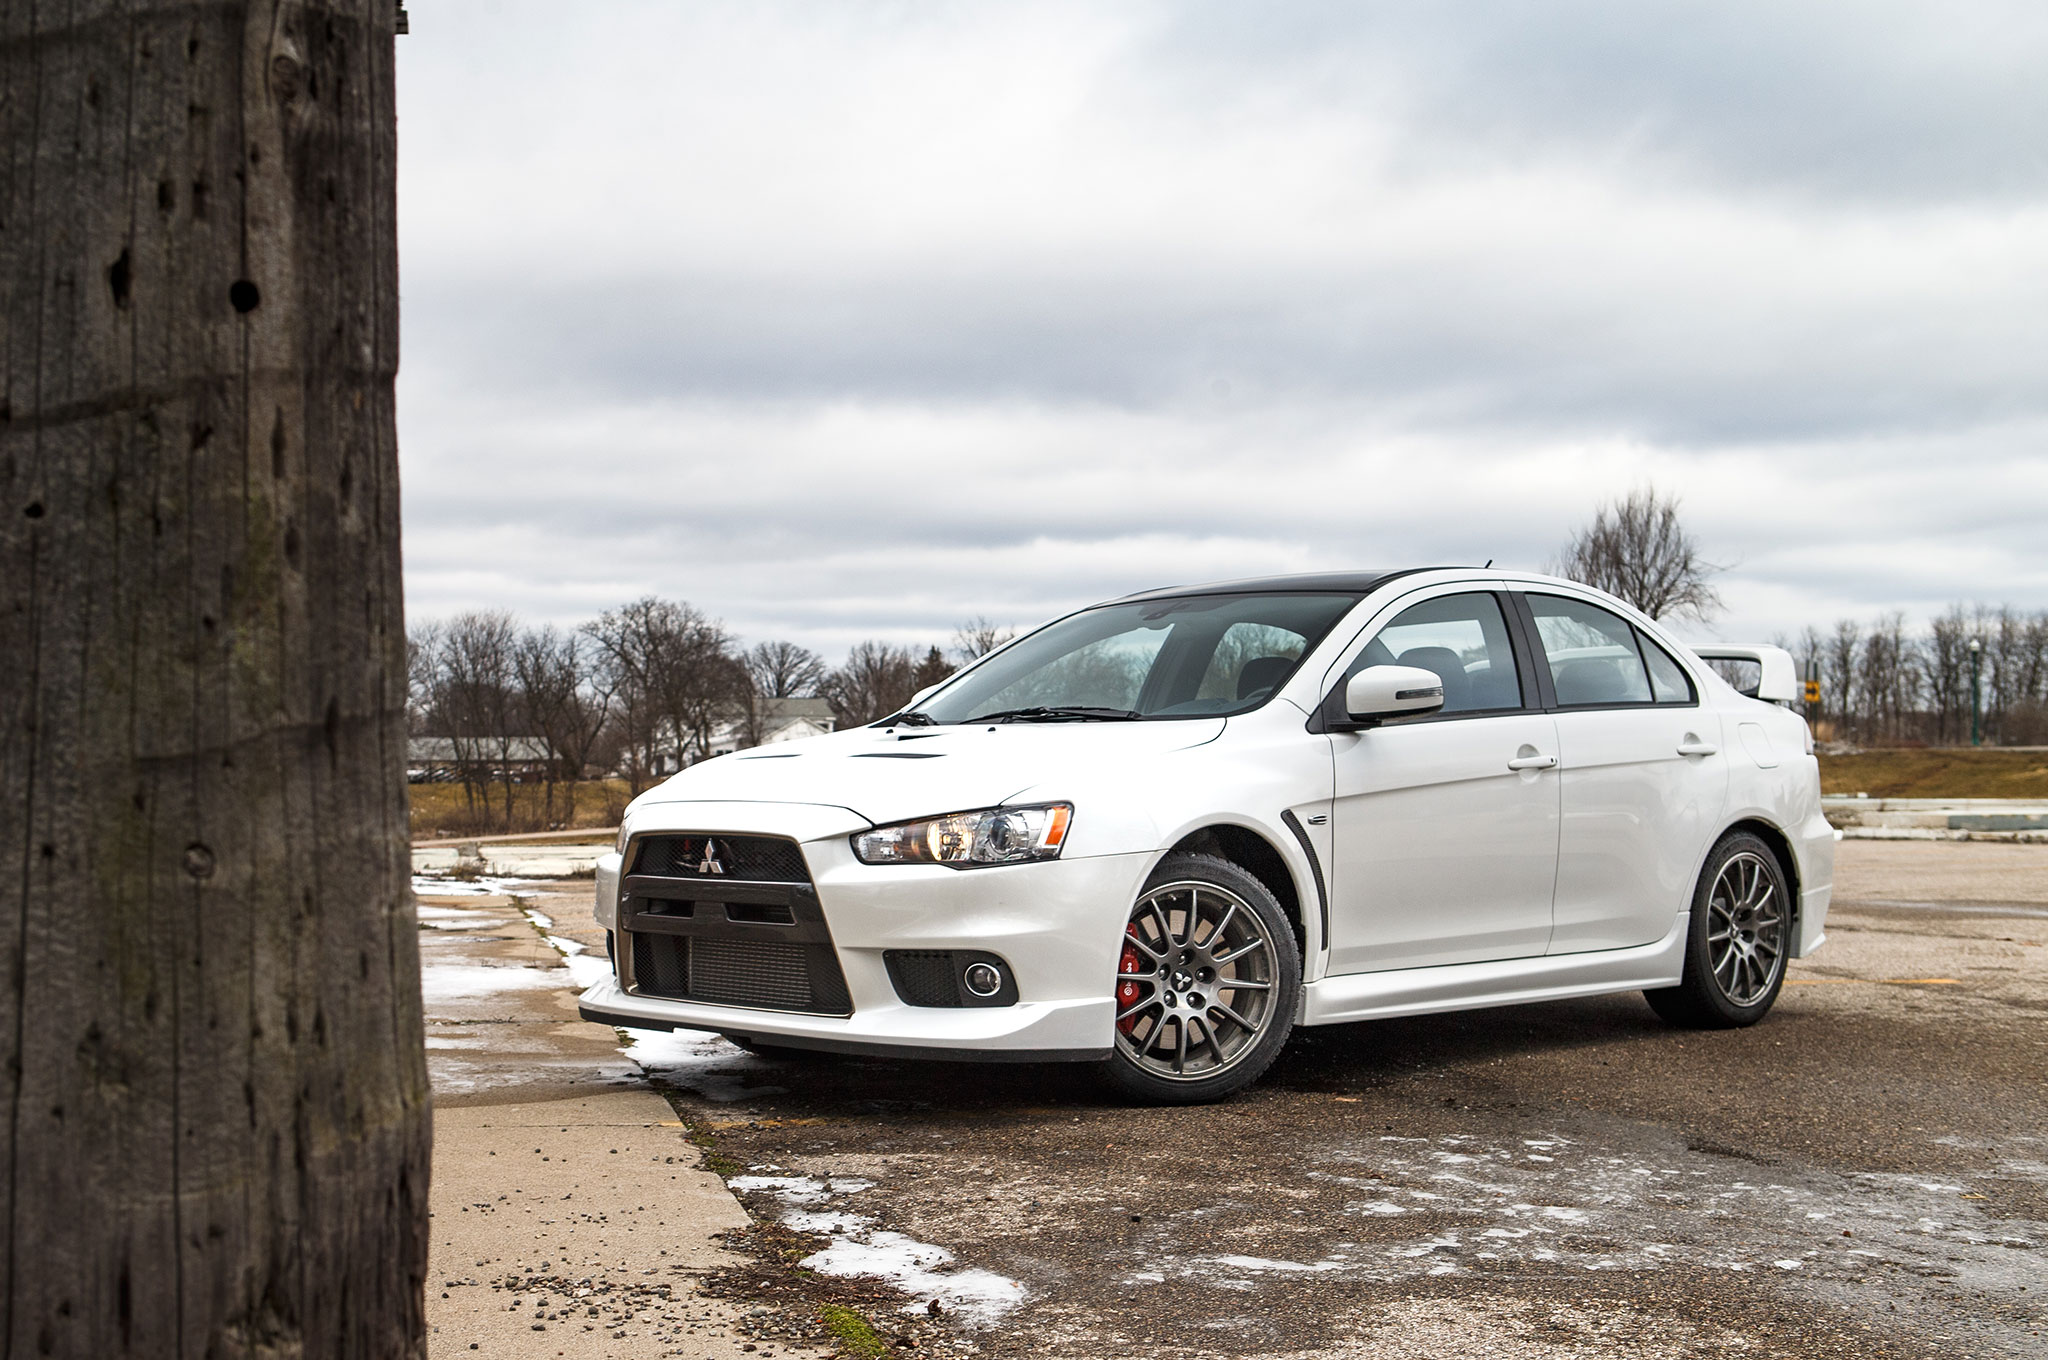 2015 mitsubishi lancer evolution final edition first drive. Black Bedroom Furniture Sets. Home Design Ideas